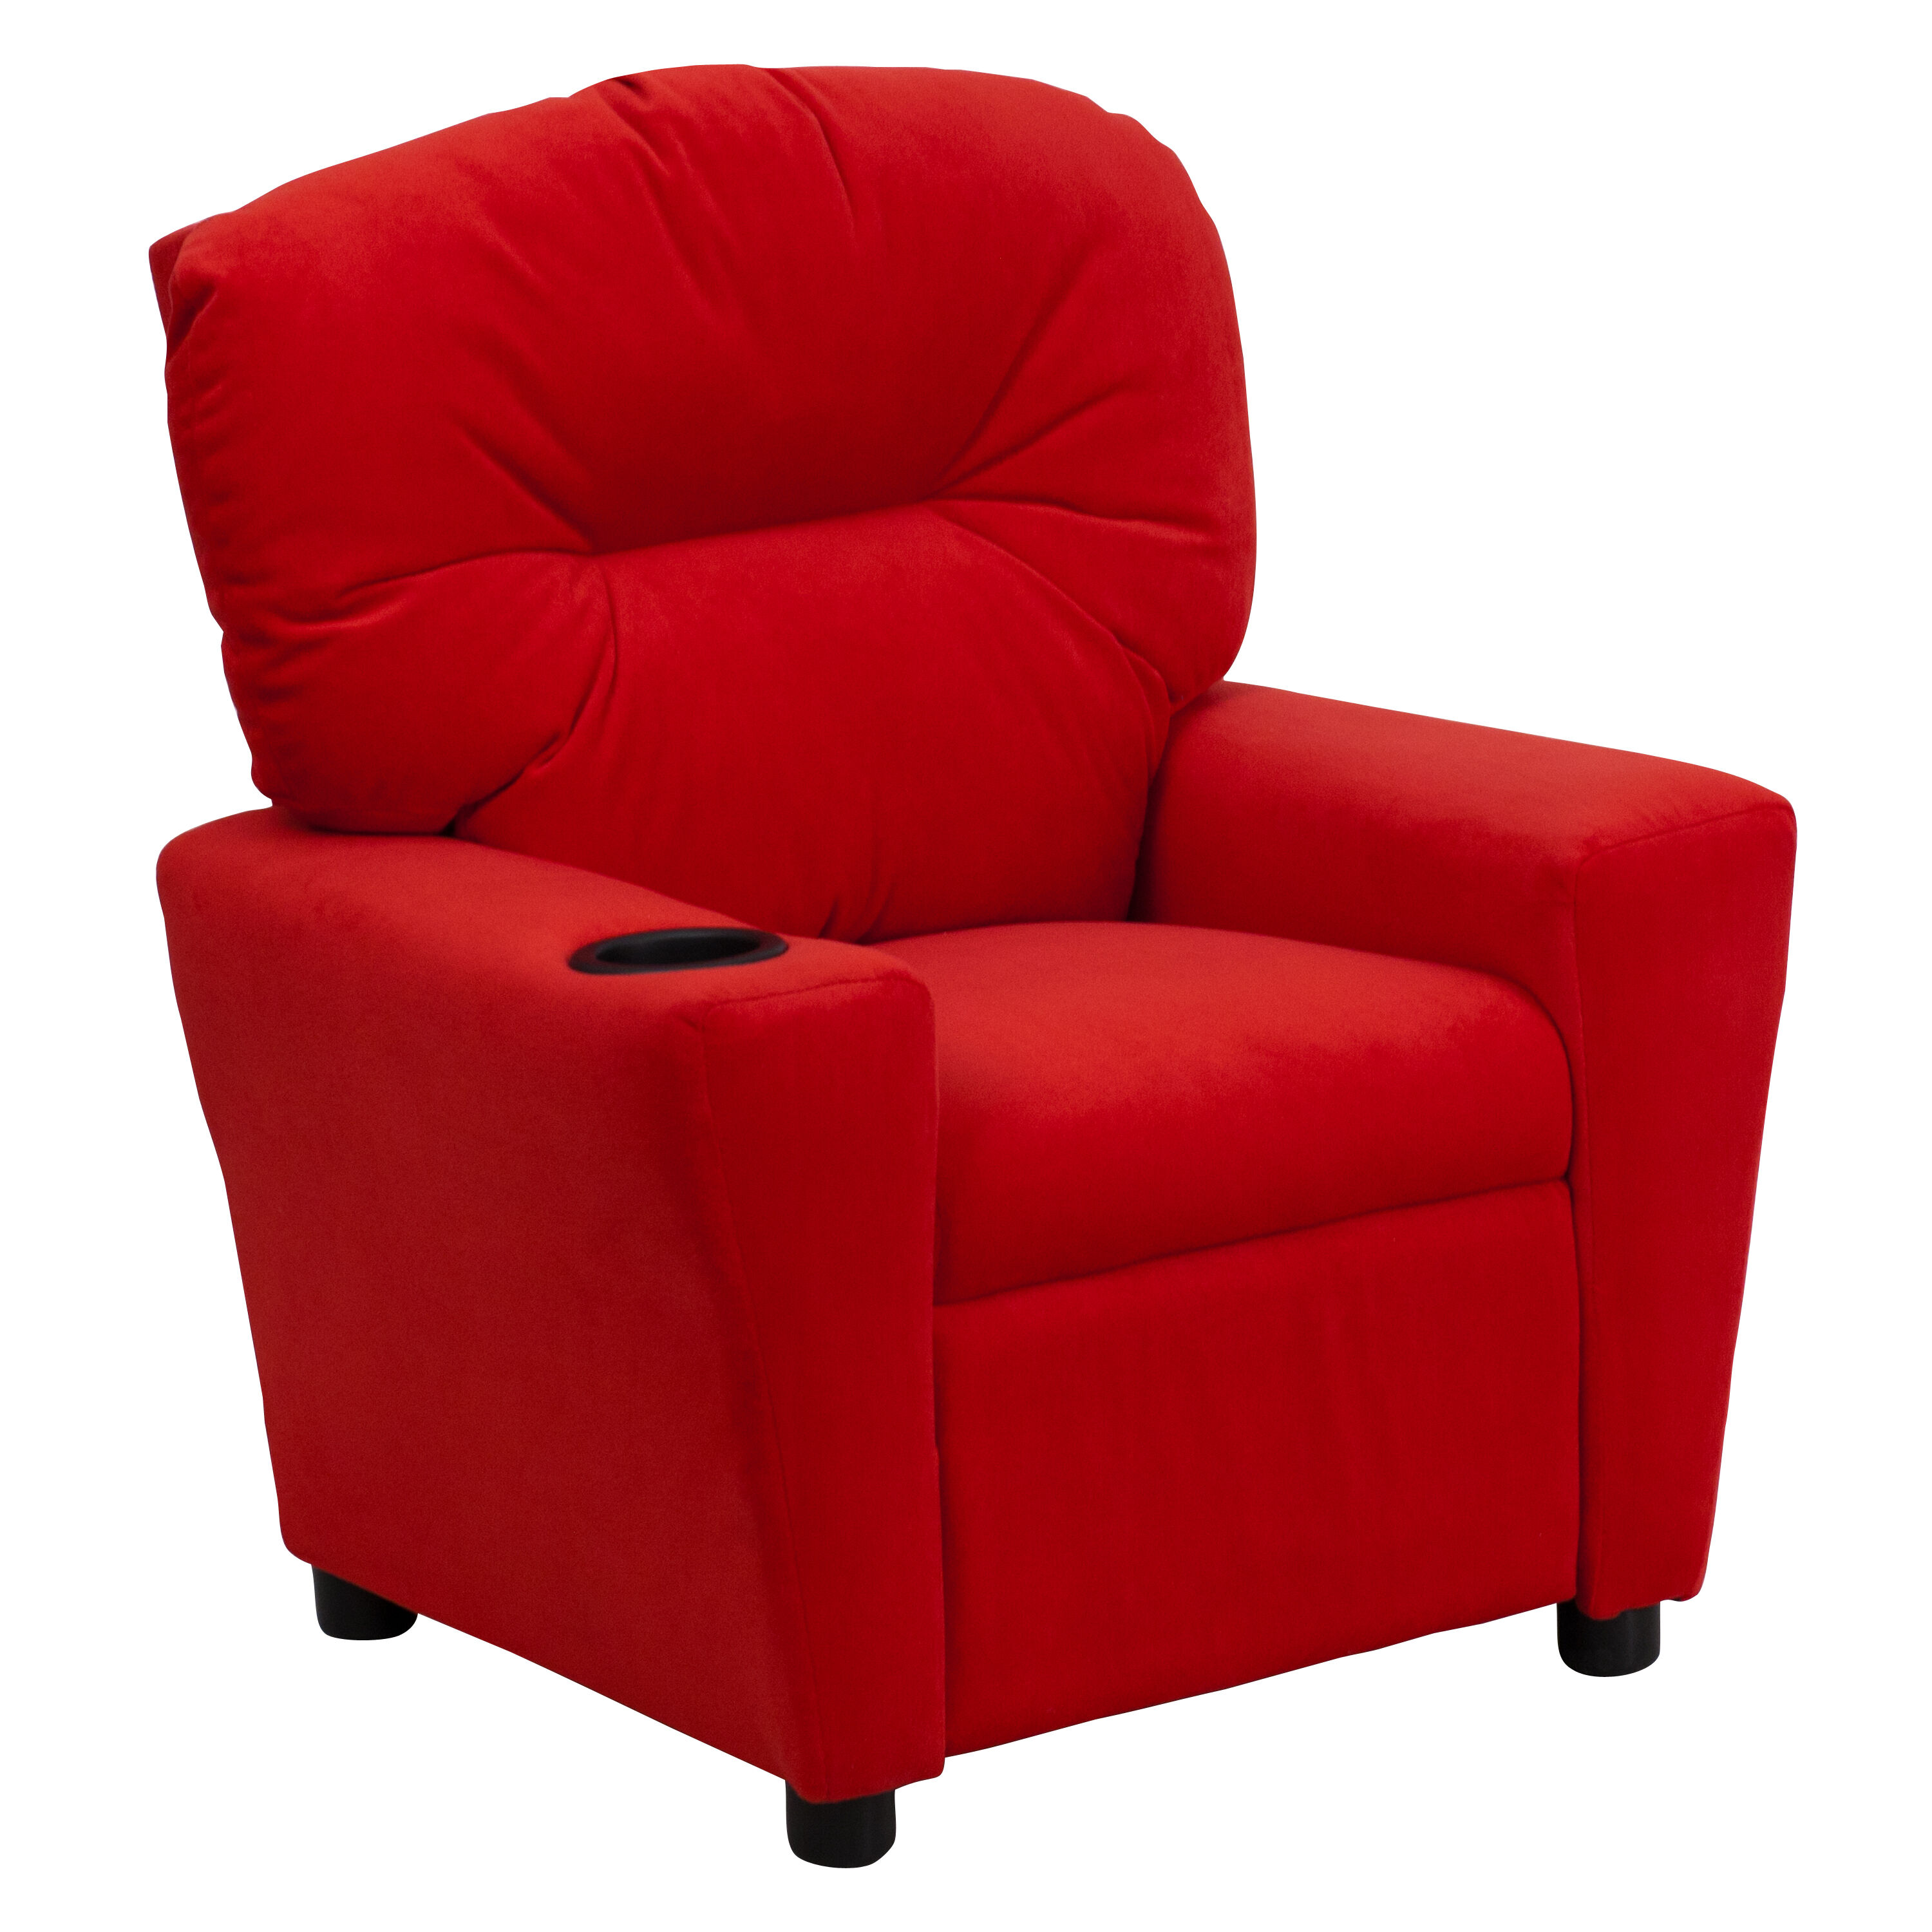 kid recliner chair fairfield company red microfiber kids bt 7950 mic gg